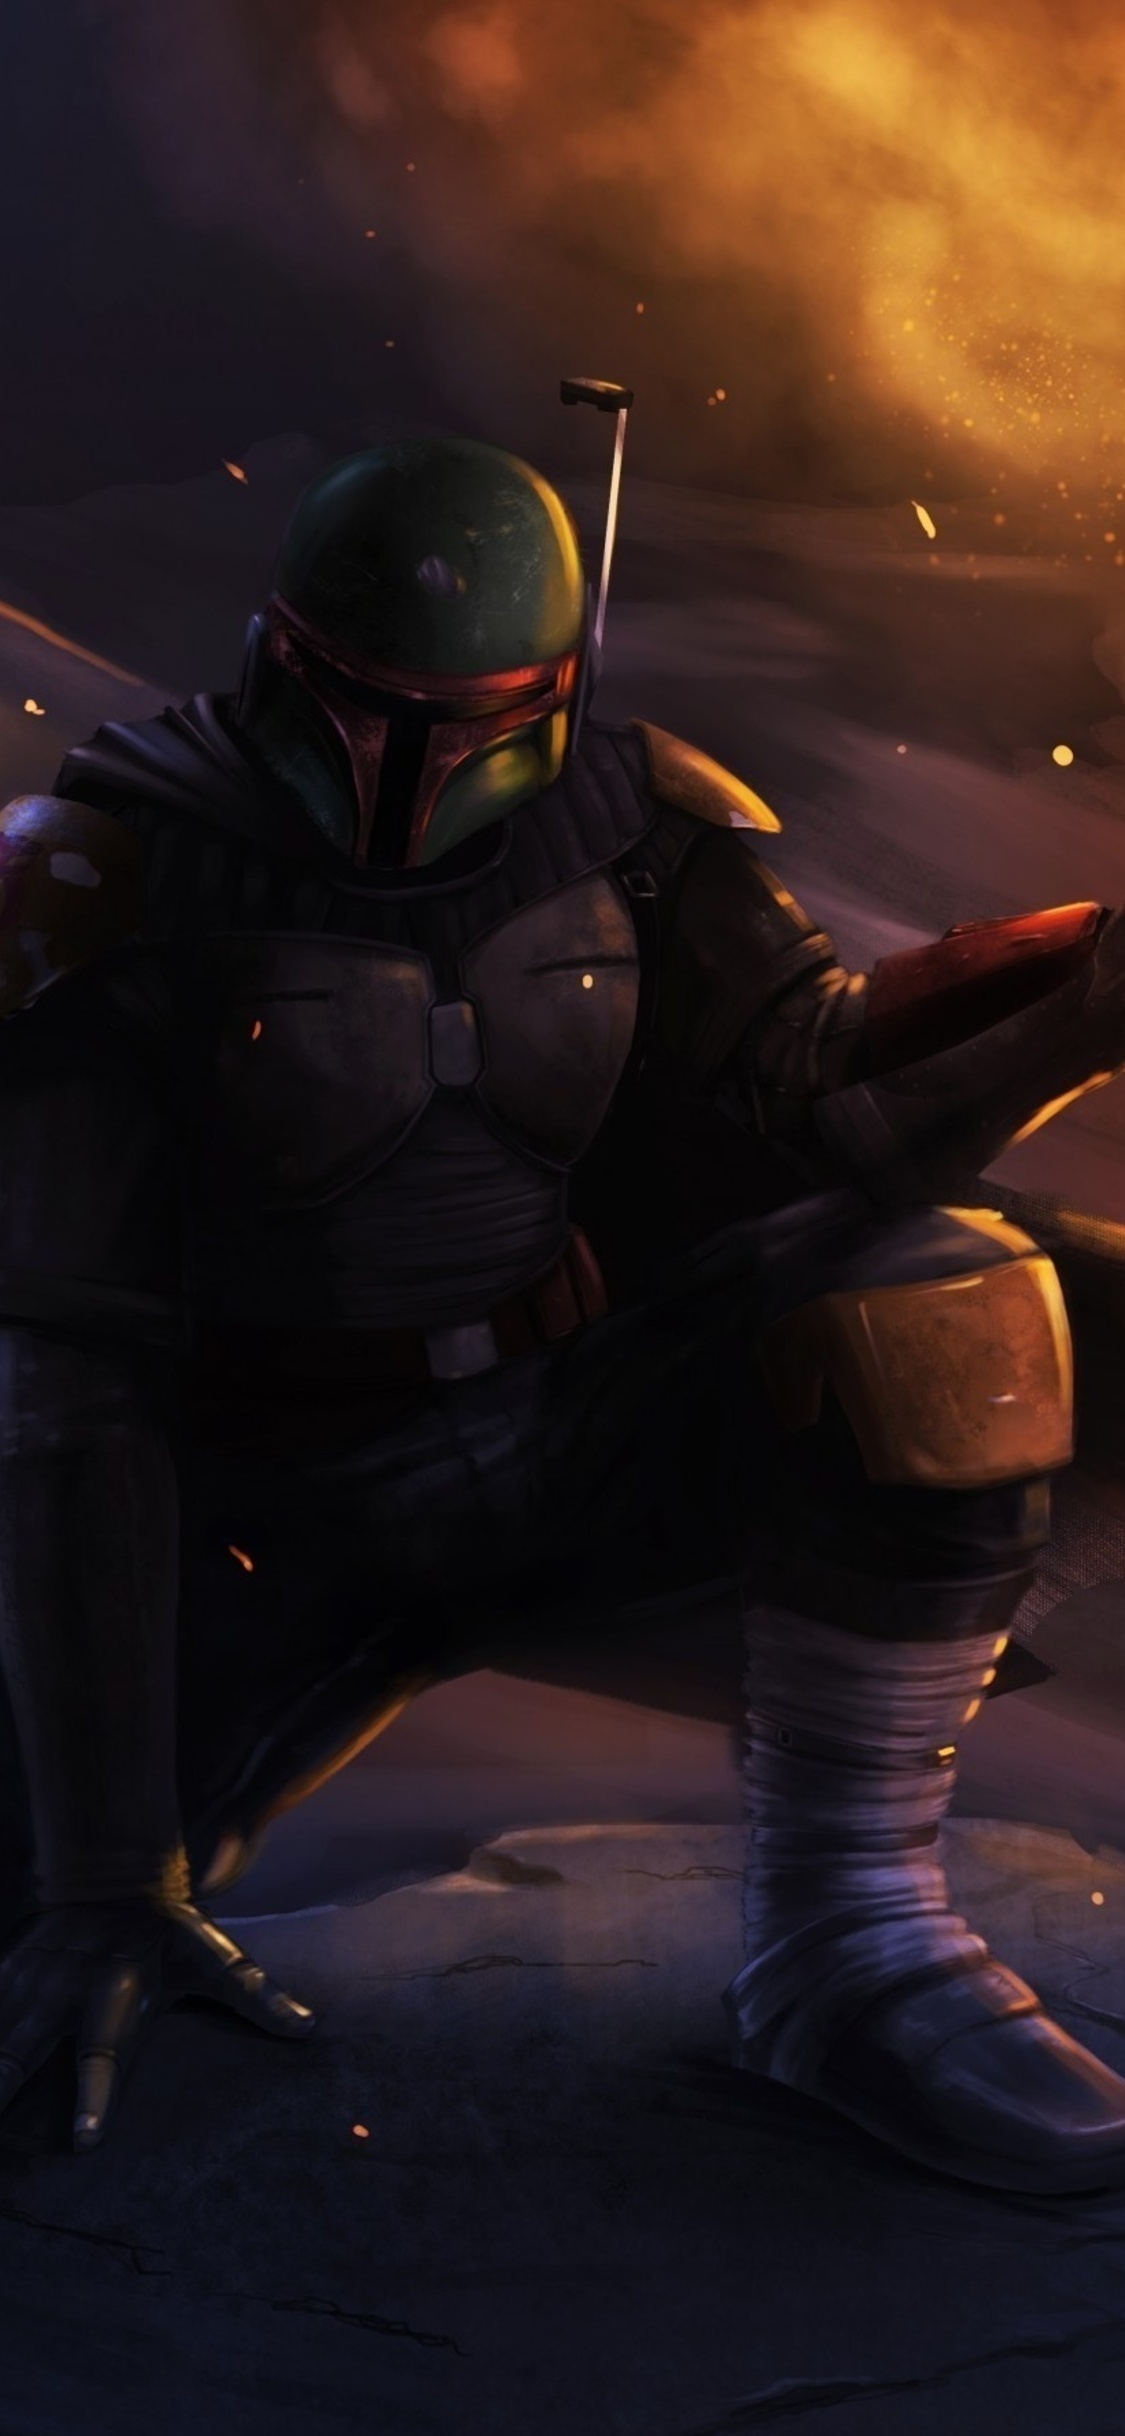 1125x2436 Boba Fett Star Wars Iphone Xs Iphone 10 Iphone X Hd 4k